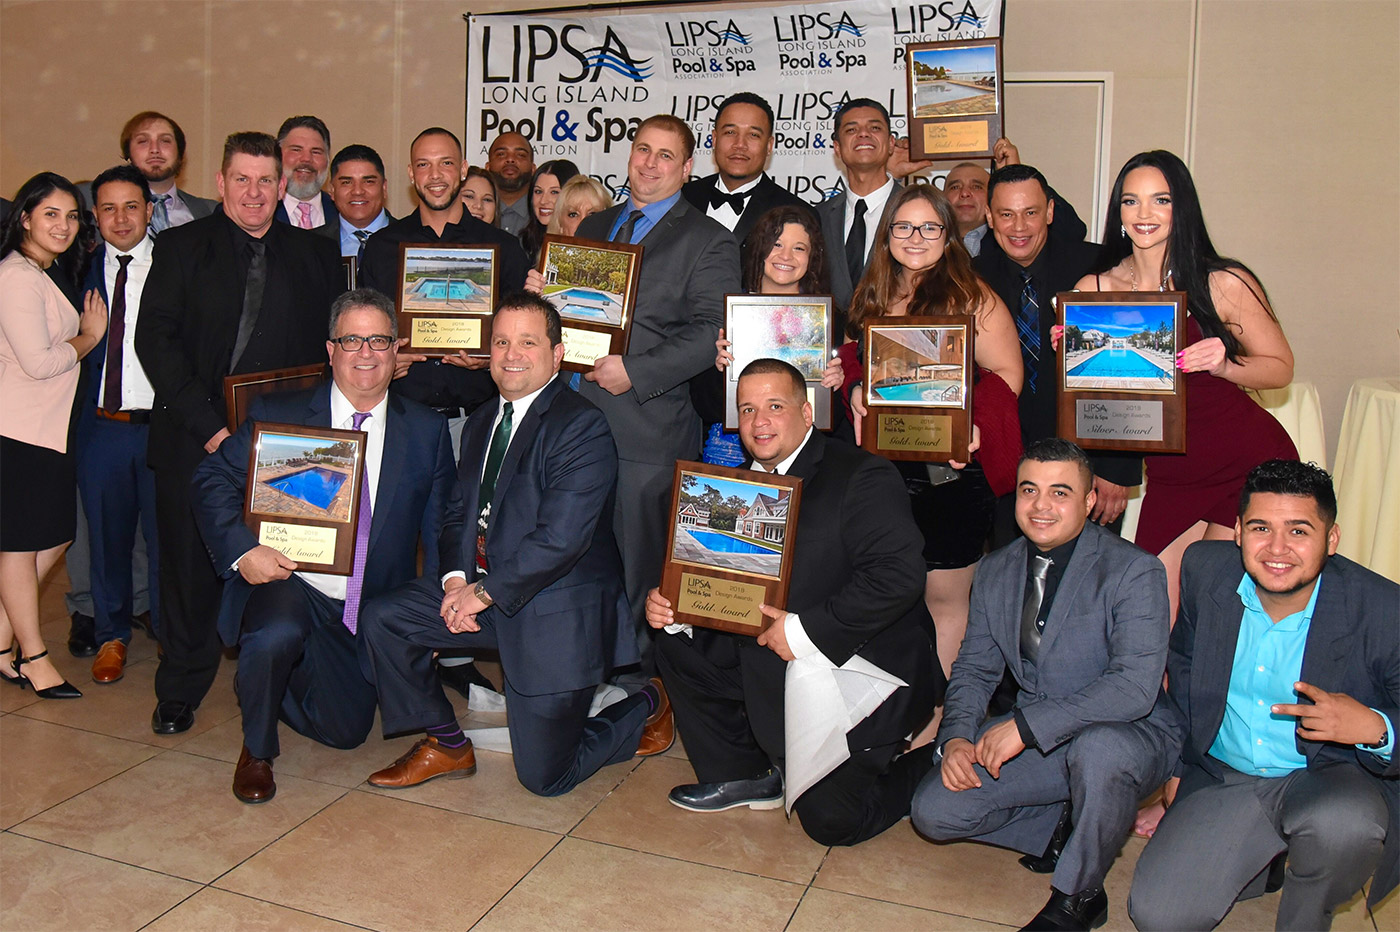 The Ultimate in Pool Care Receives Multiple LIPSA Awards for Long Island Pool Construction